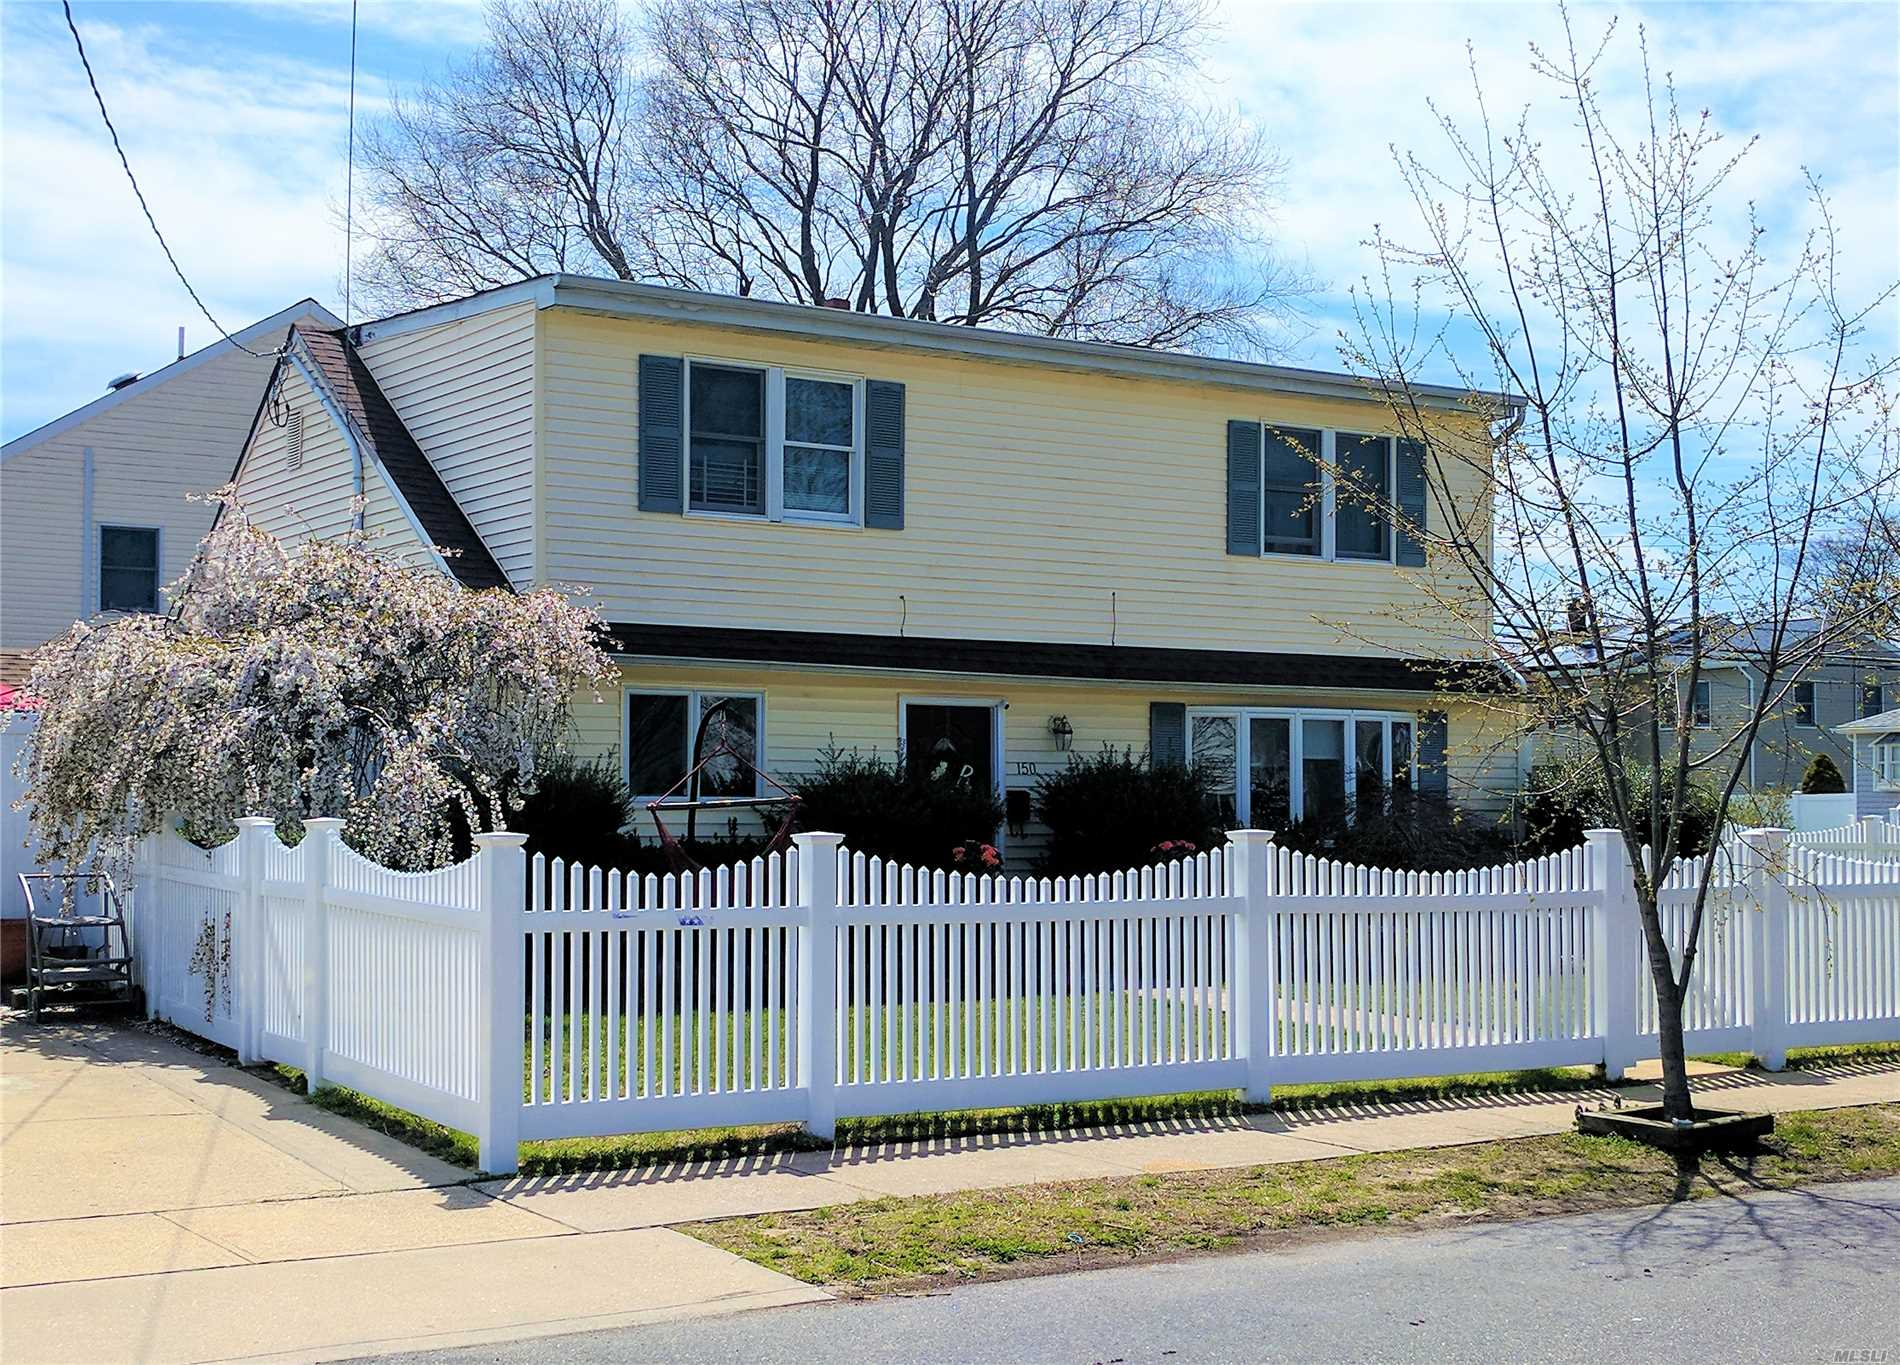 Updated Expanded Ranch - Massapequa Schools, 23, Birch La Elemen. Move Right In! Many New & Updated Features Inc: Large Custom Solid Wood Eik W/Gas Cook, Quartz, Toe Kick Heat, Smart Fridge & Much More, Updtd Fbath,  New Fbath, Roof, Siding, Windows, 2Z Gas Heat, 200 Amp, Igs, Floors, Doors, Moldings, Lighting, Huge Shed, Etc... Fully Fenced Yard W/Convenient Access To Stores & Library. Lots Of Storage!